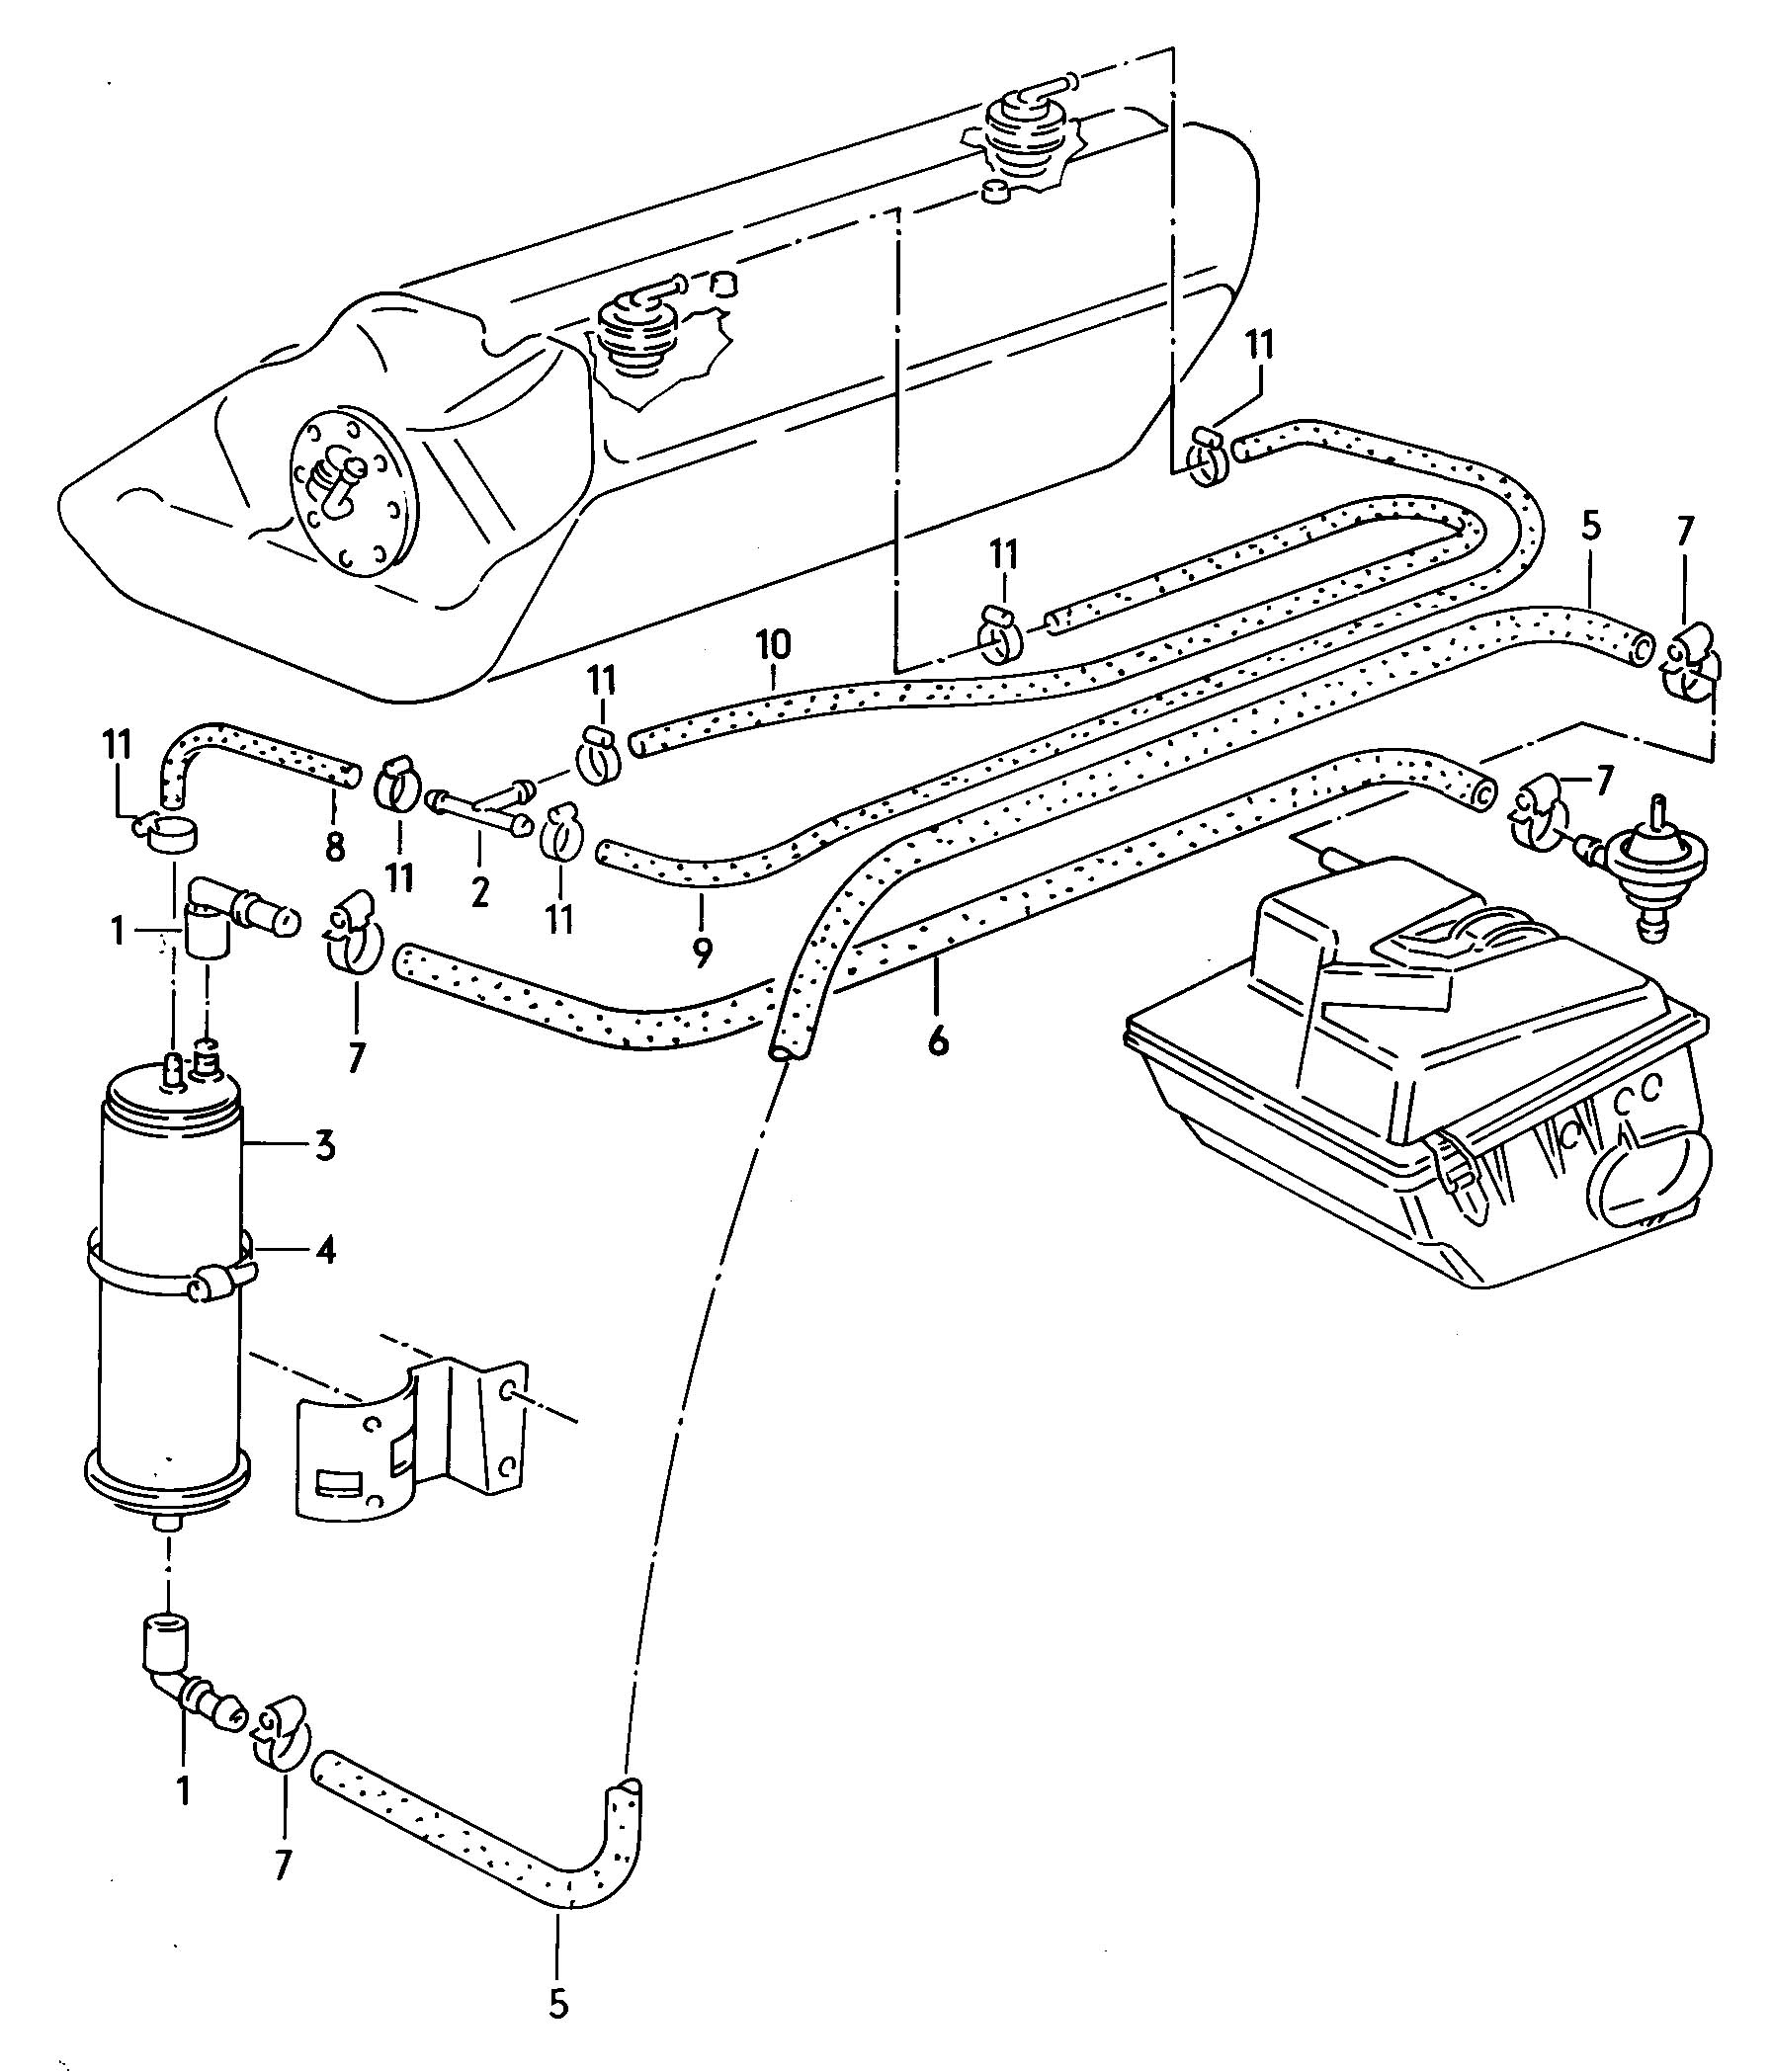 Service manual [1991 Land Rover Sterling Evap Canister